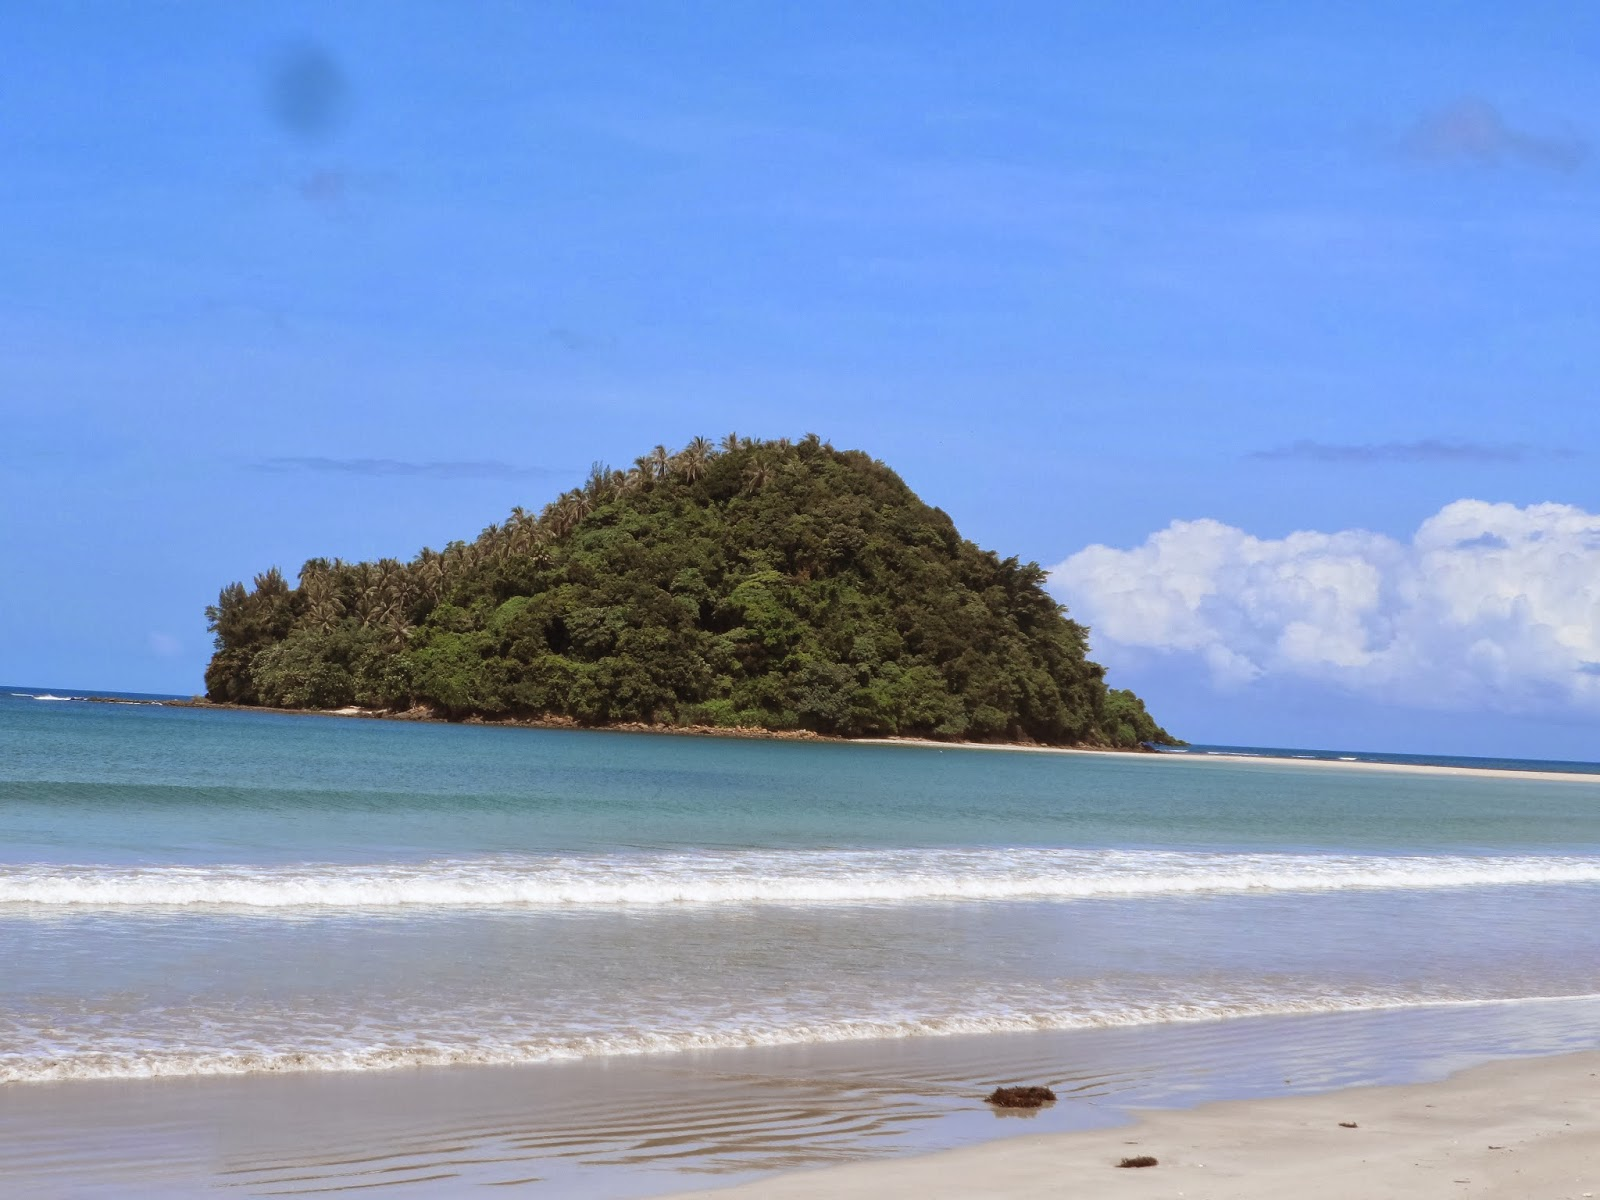 Tip of borneo beach and island